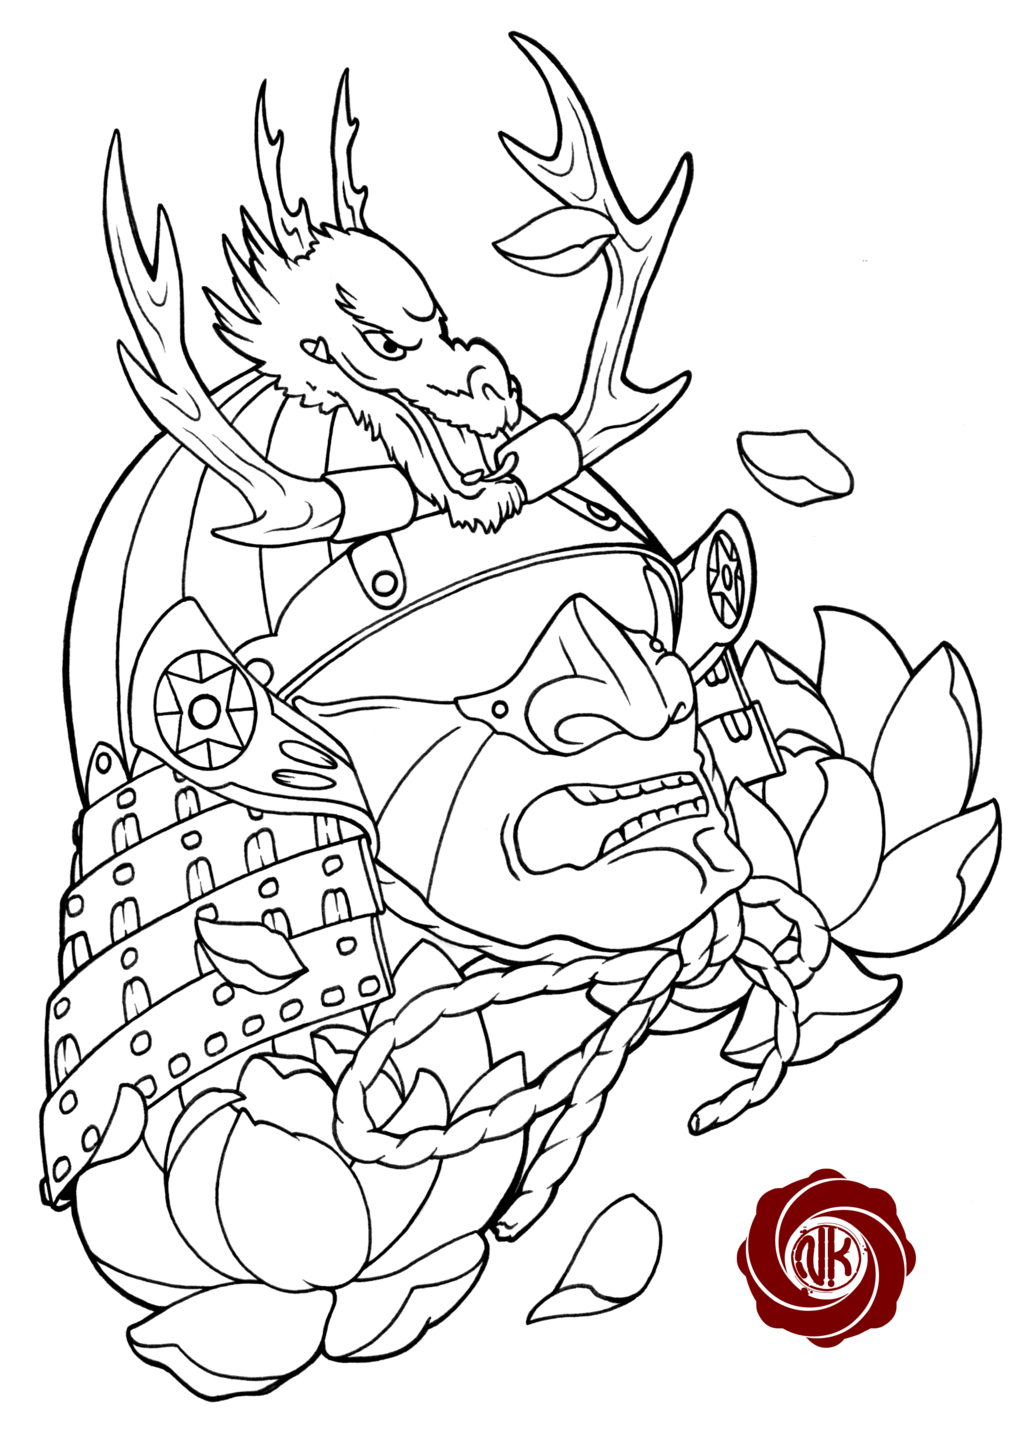 Traditional Japanese Samurai Tattoo Designssamurai Sketch Tattoo With Dragon By Punk On Deviantart Itxzh Samurai Tattoo Design Japanese Tattoo Samurai Tattoo